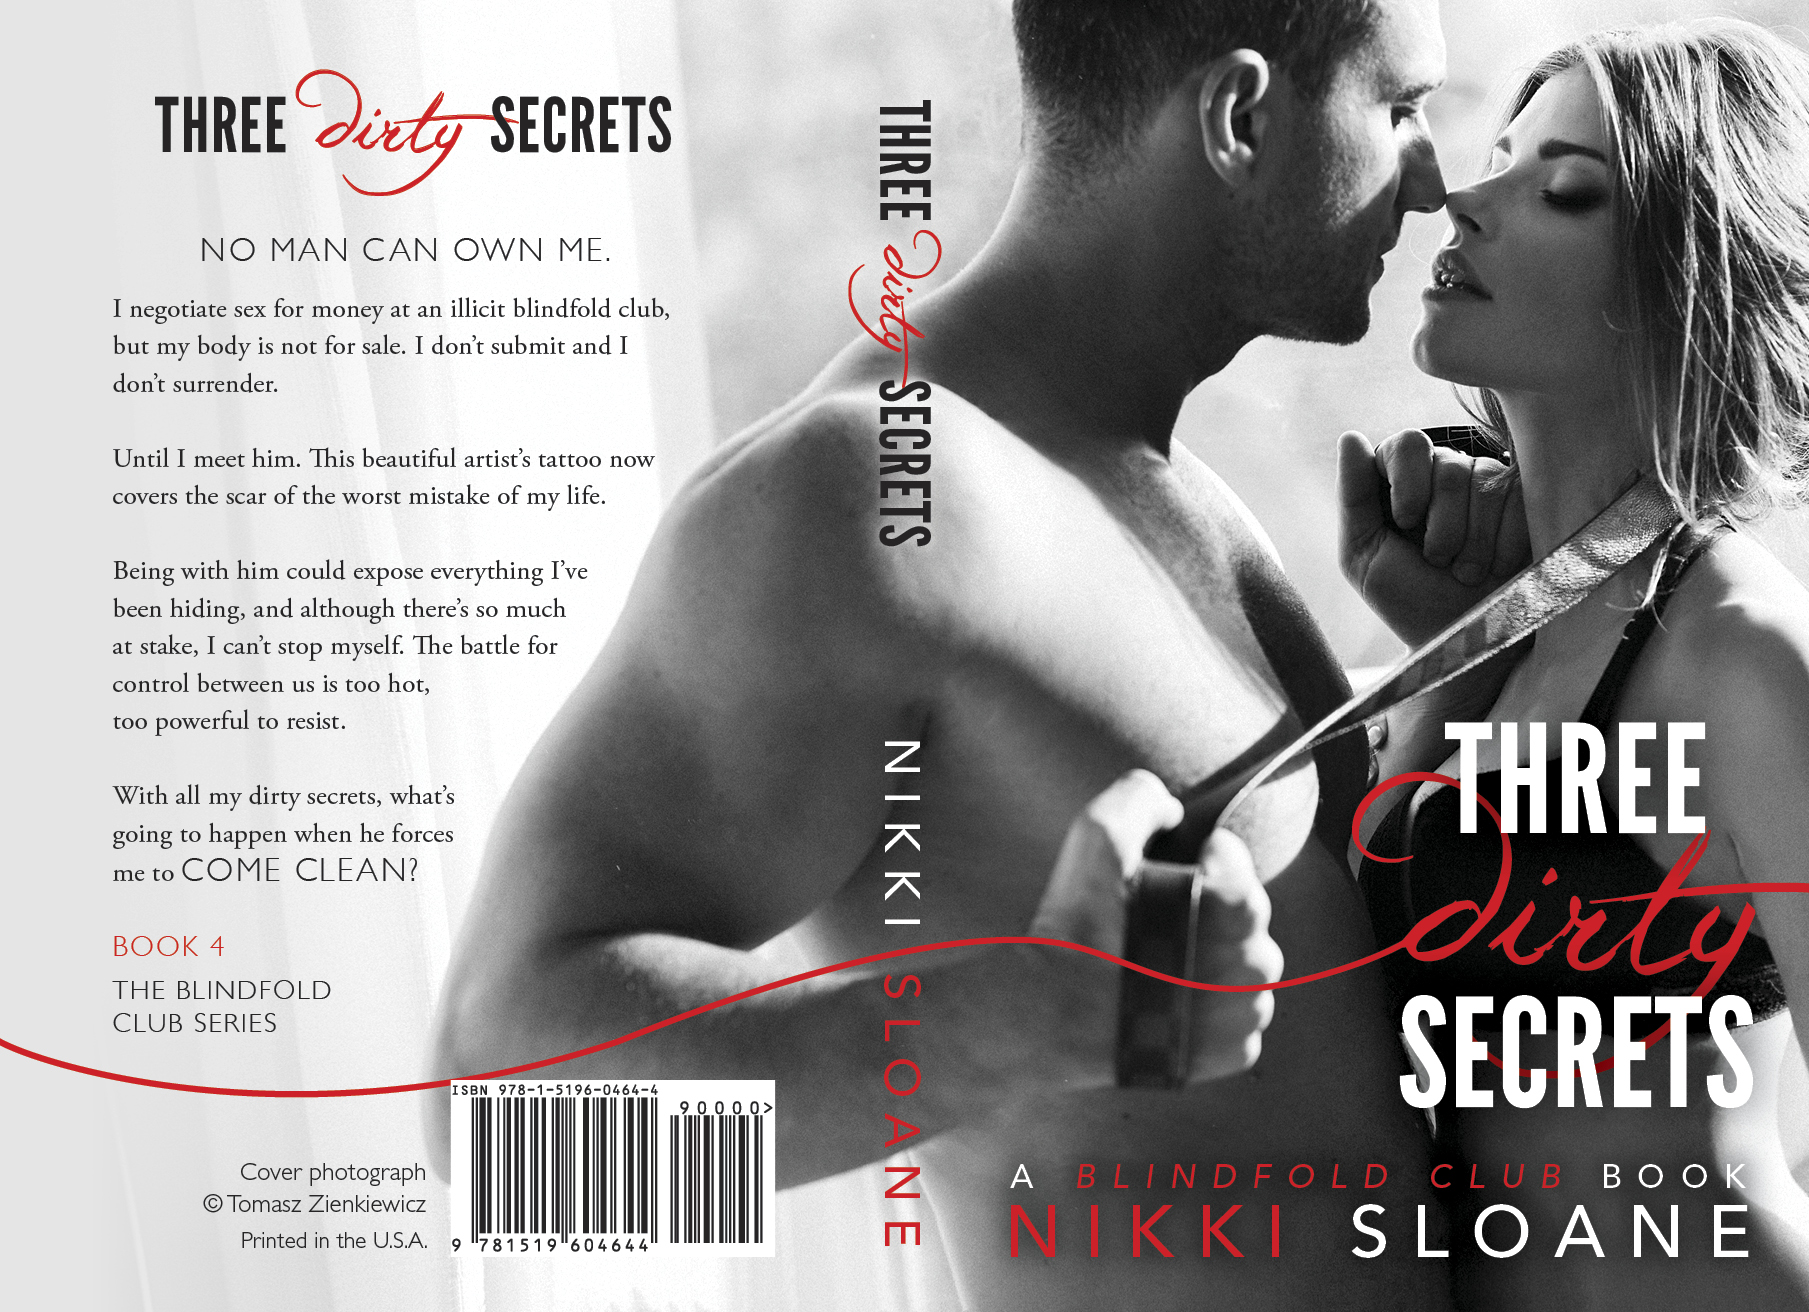 Three Dirty Secrets Full Jacket